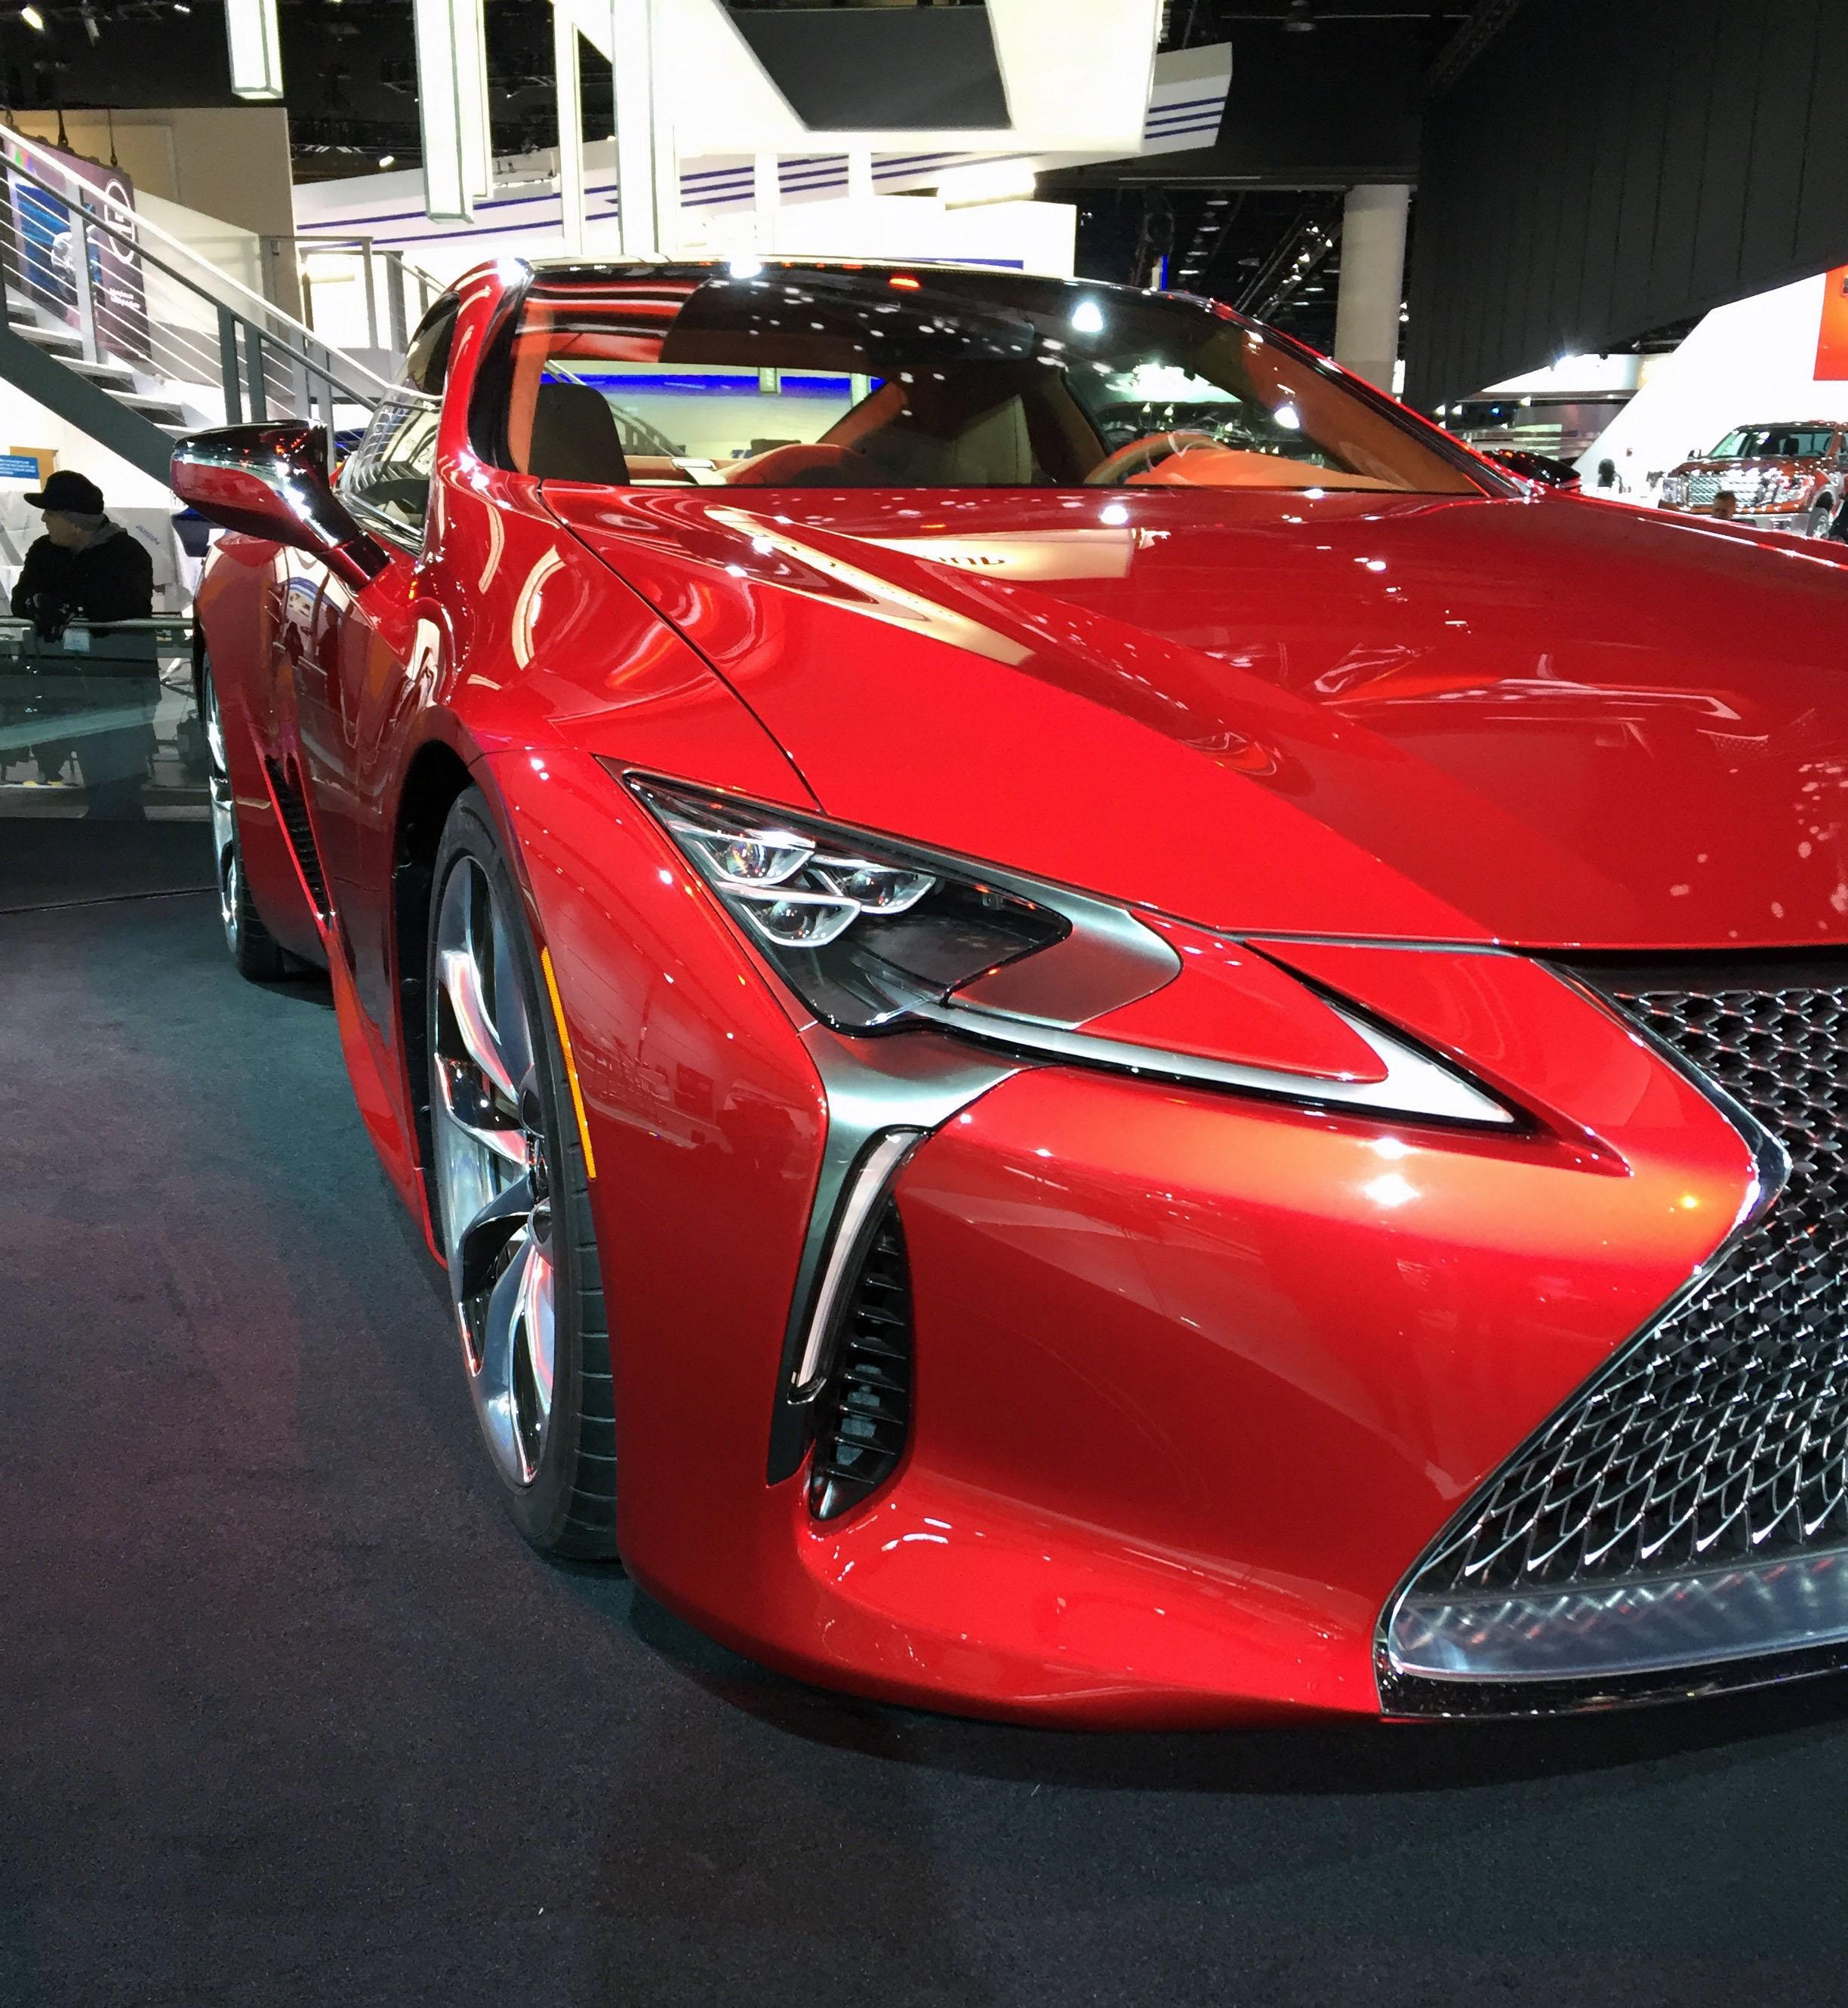 2017 Lexus LC550 (Photo by Jill Ciminillo)